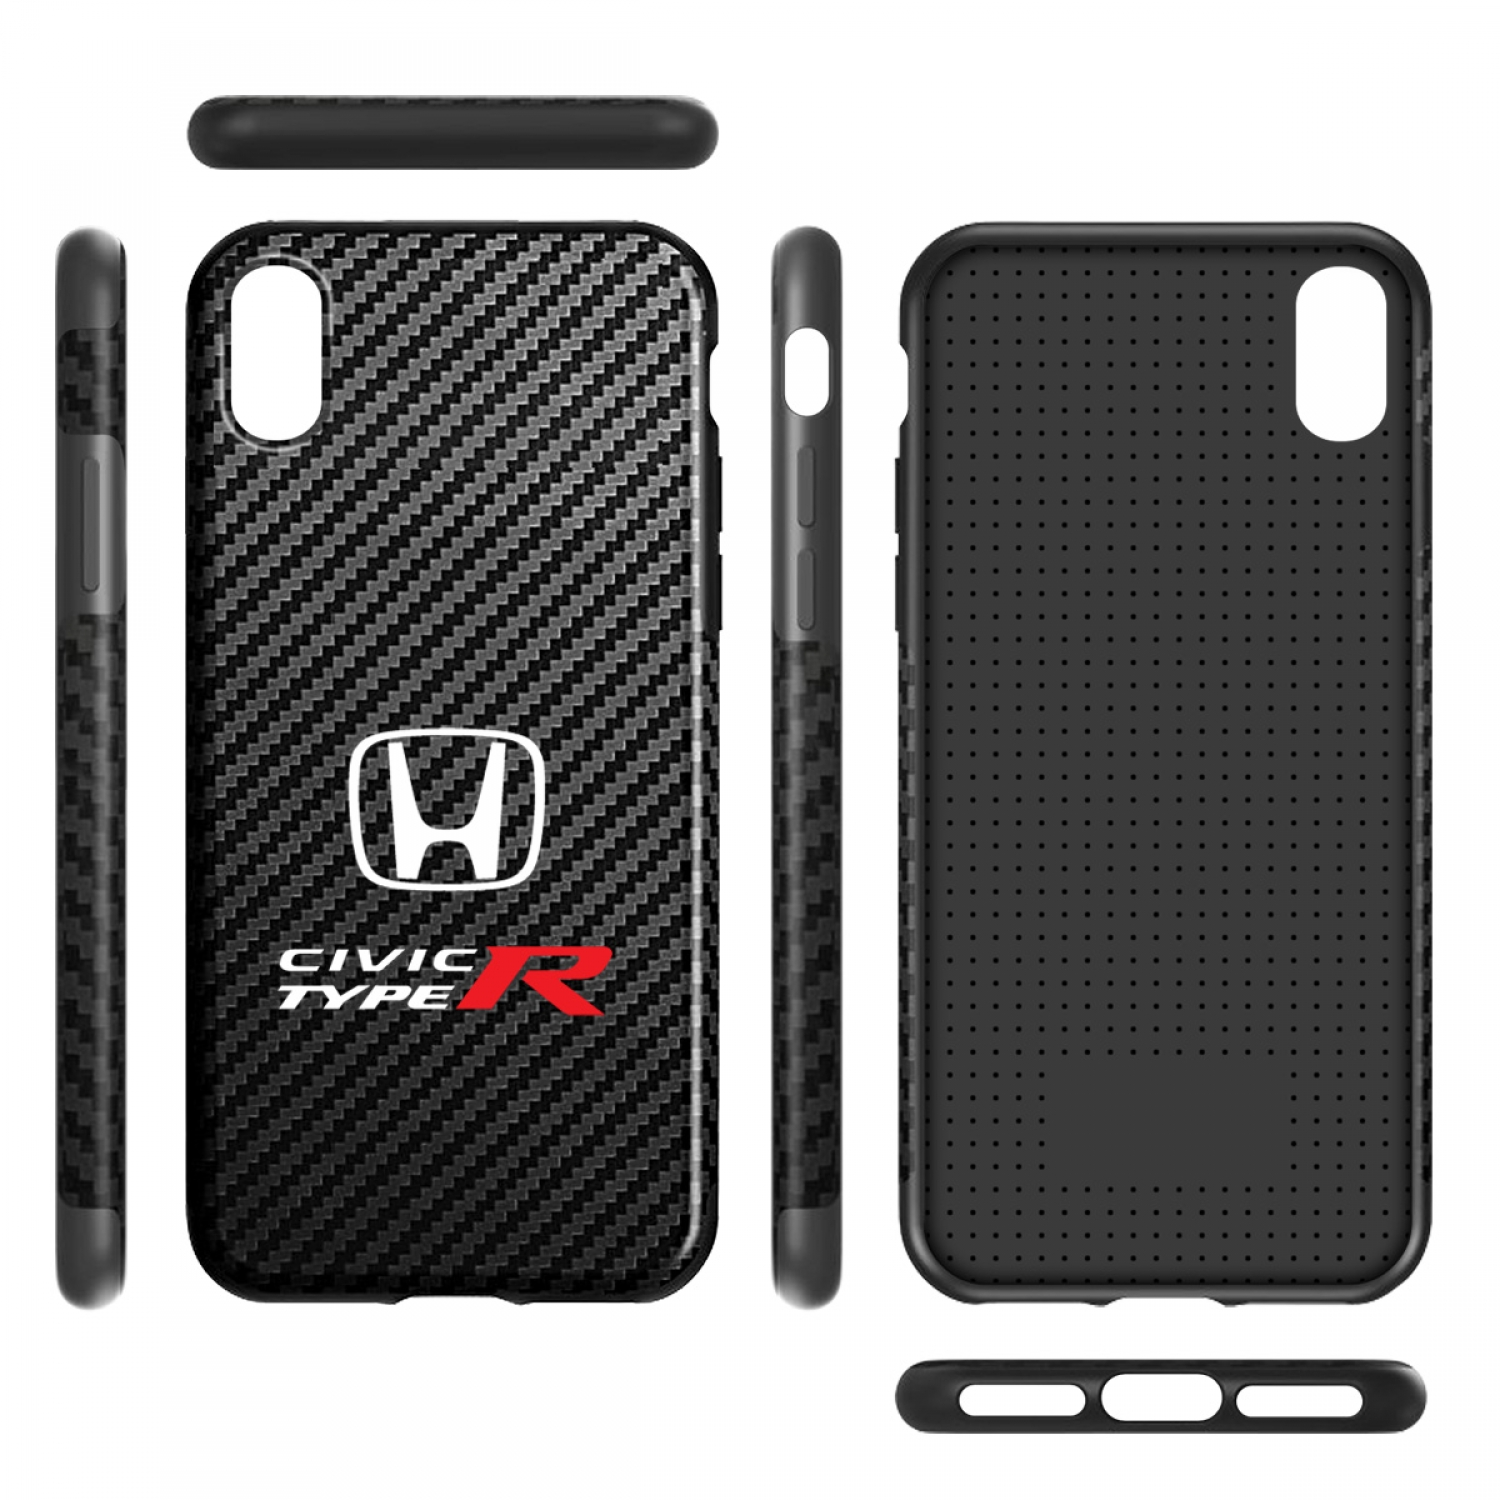 Honda Civic Type-R Black Carbon Fiber Texture Leather TPU Shockproof Cell Phone Case